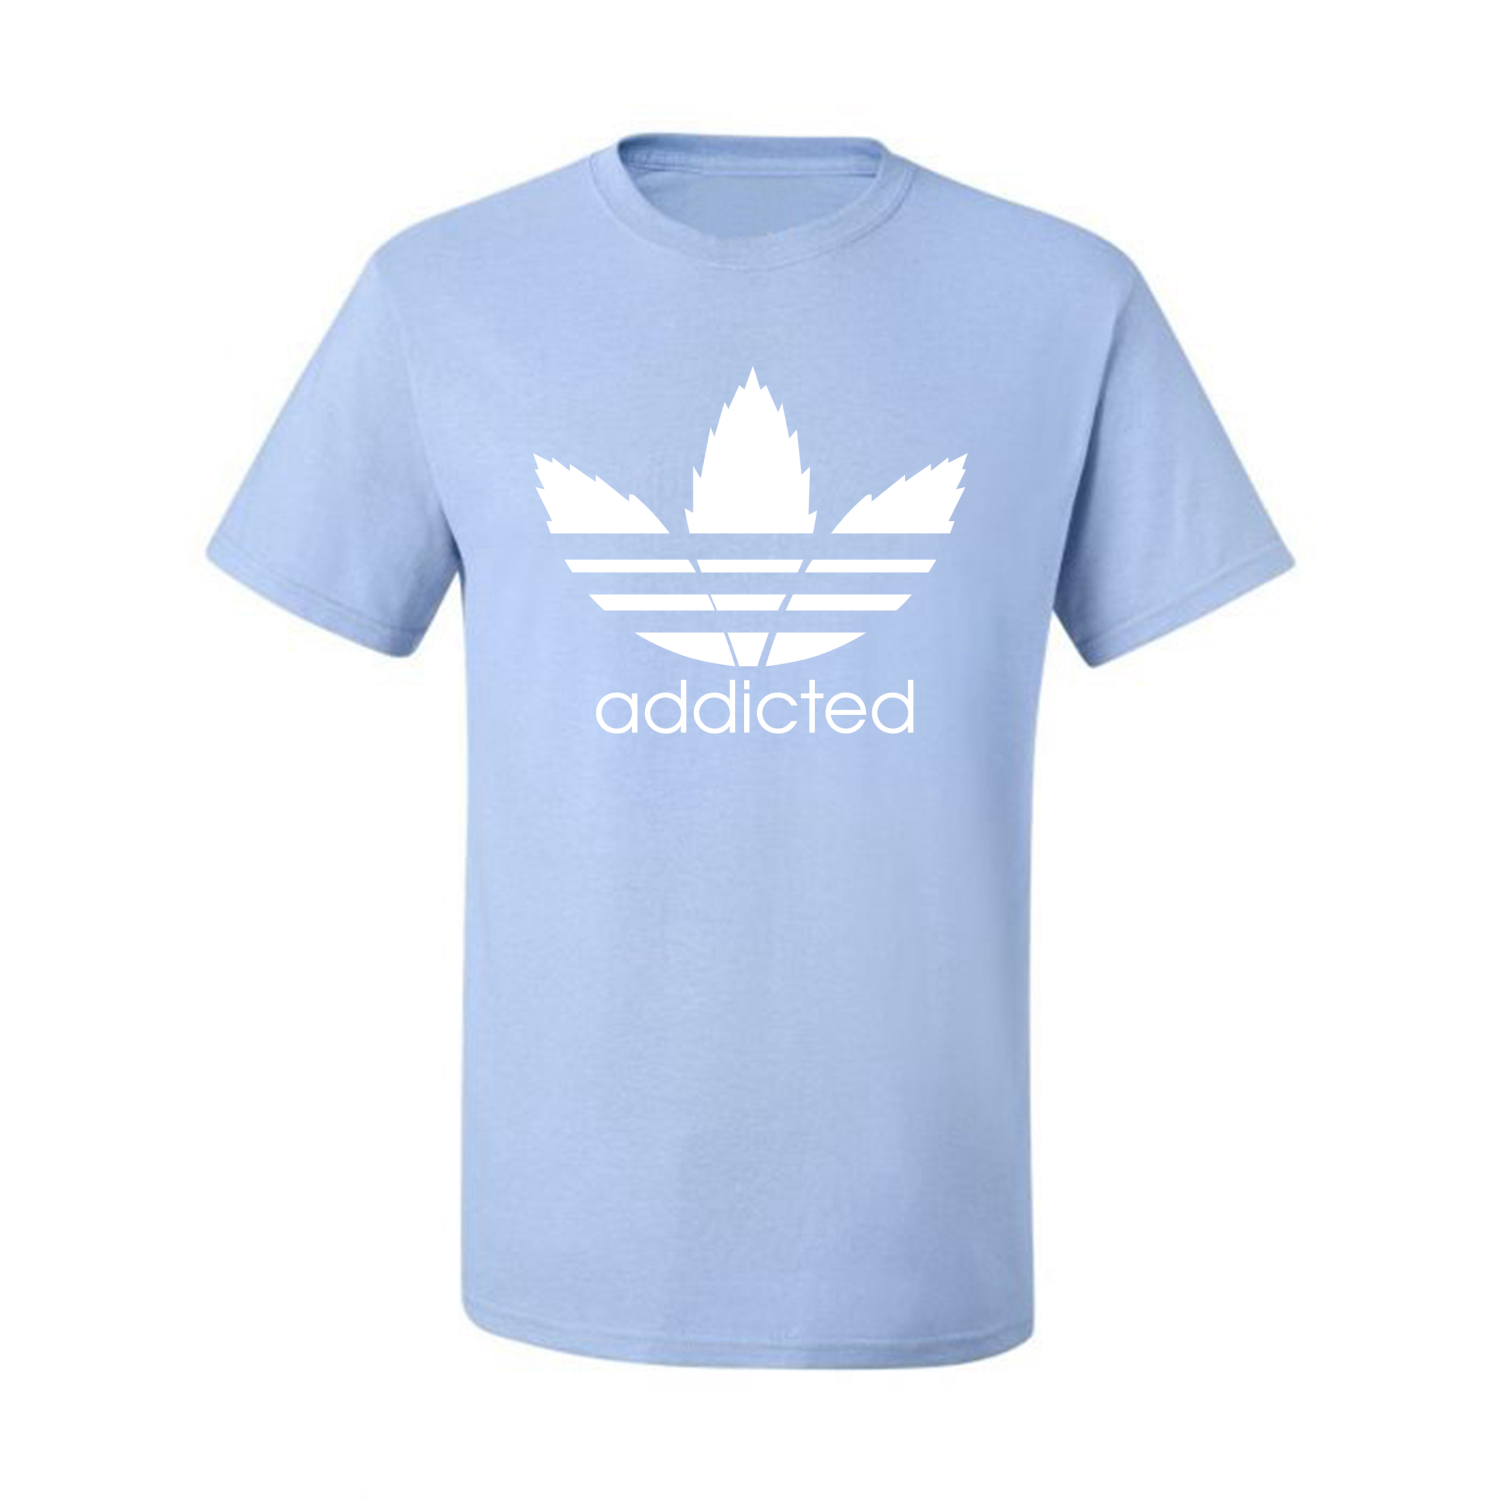 Addicted-White-Pot-Leaf-Mens-Weed-T-Shirt-Graphic-Parody-Tee thumbnail 16